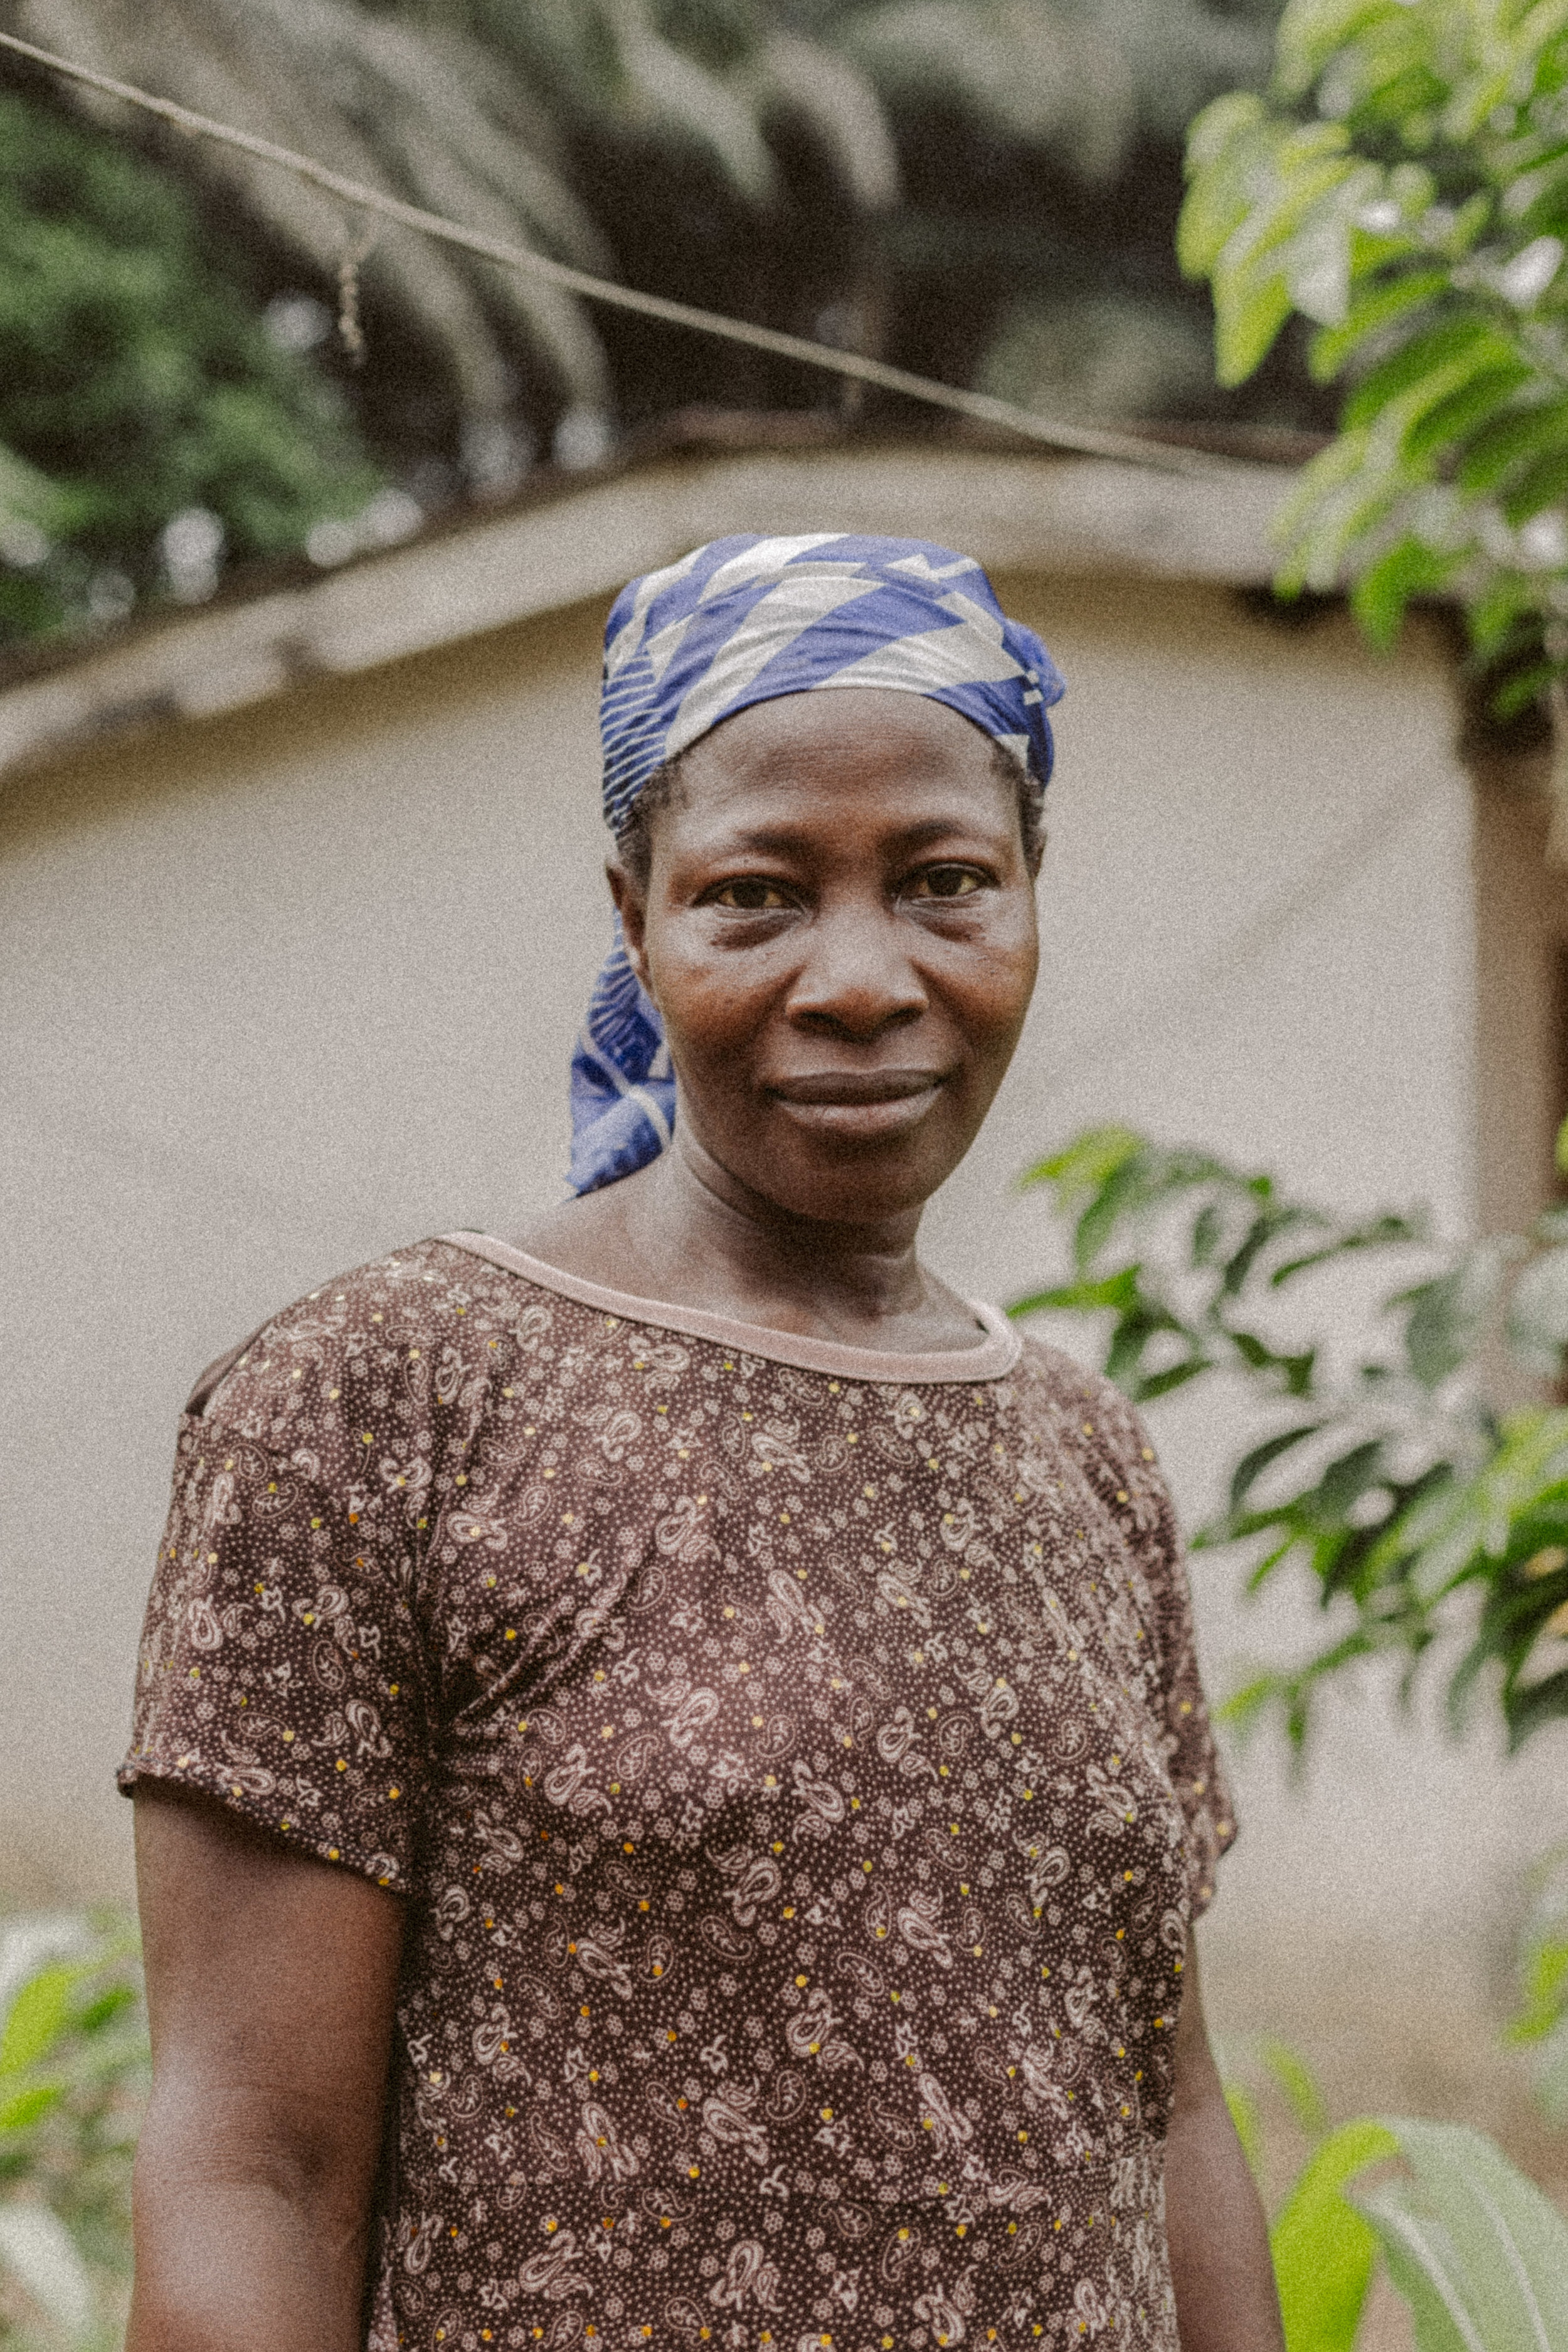 Emmanuel's adoptive Mum. The woman who promised her friend to take care of her only son, despite the fact that her husband was late.